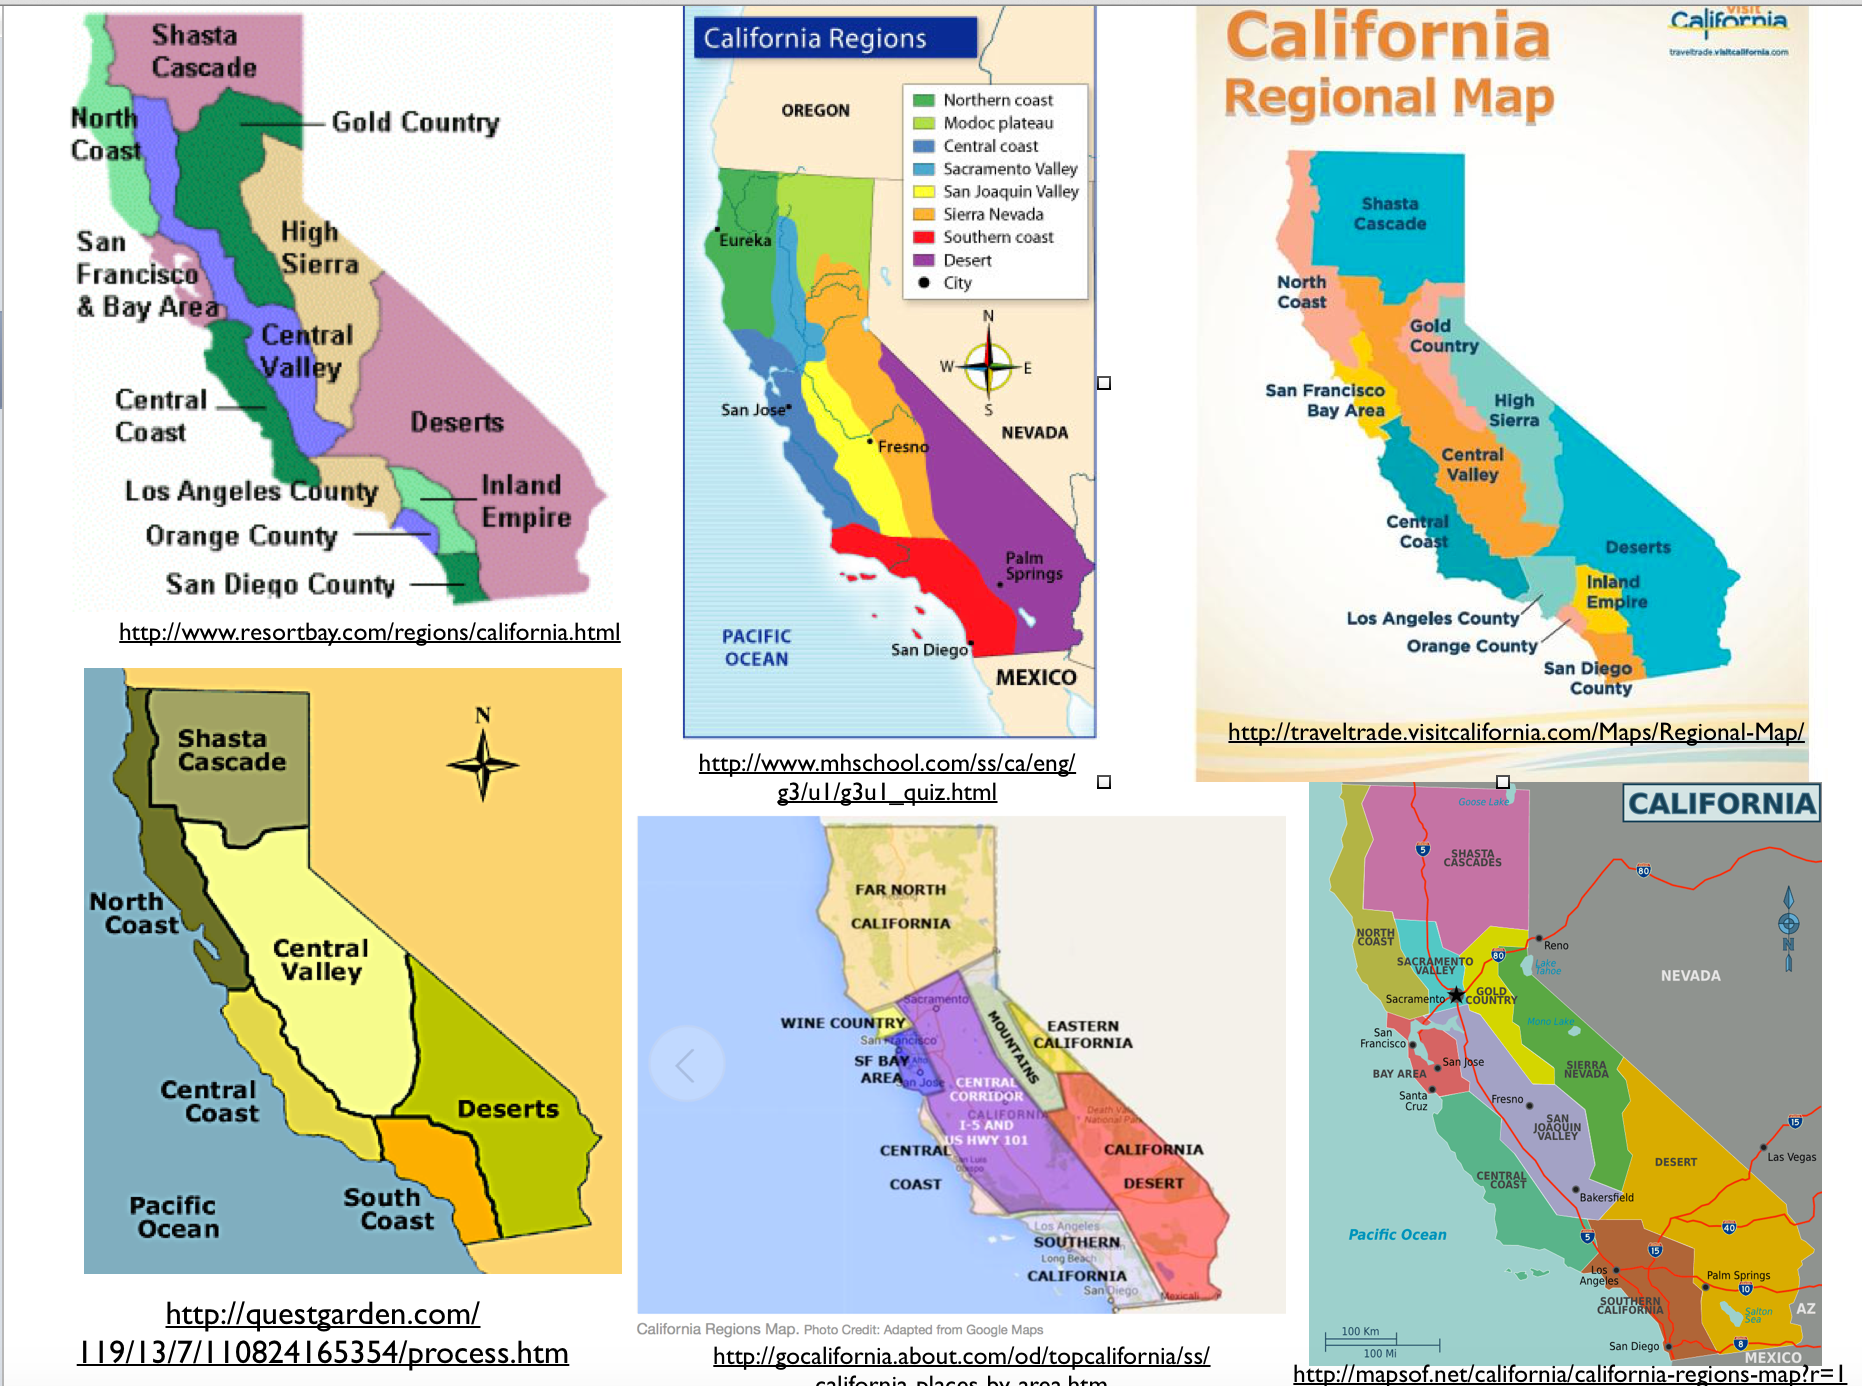 The Regionalization of California, Part 1 on